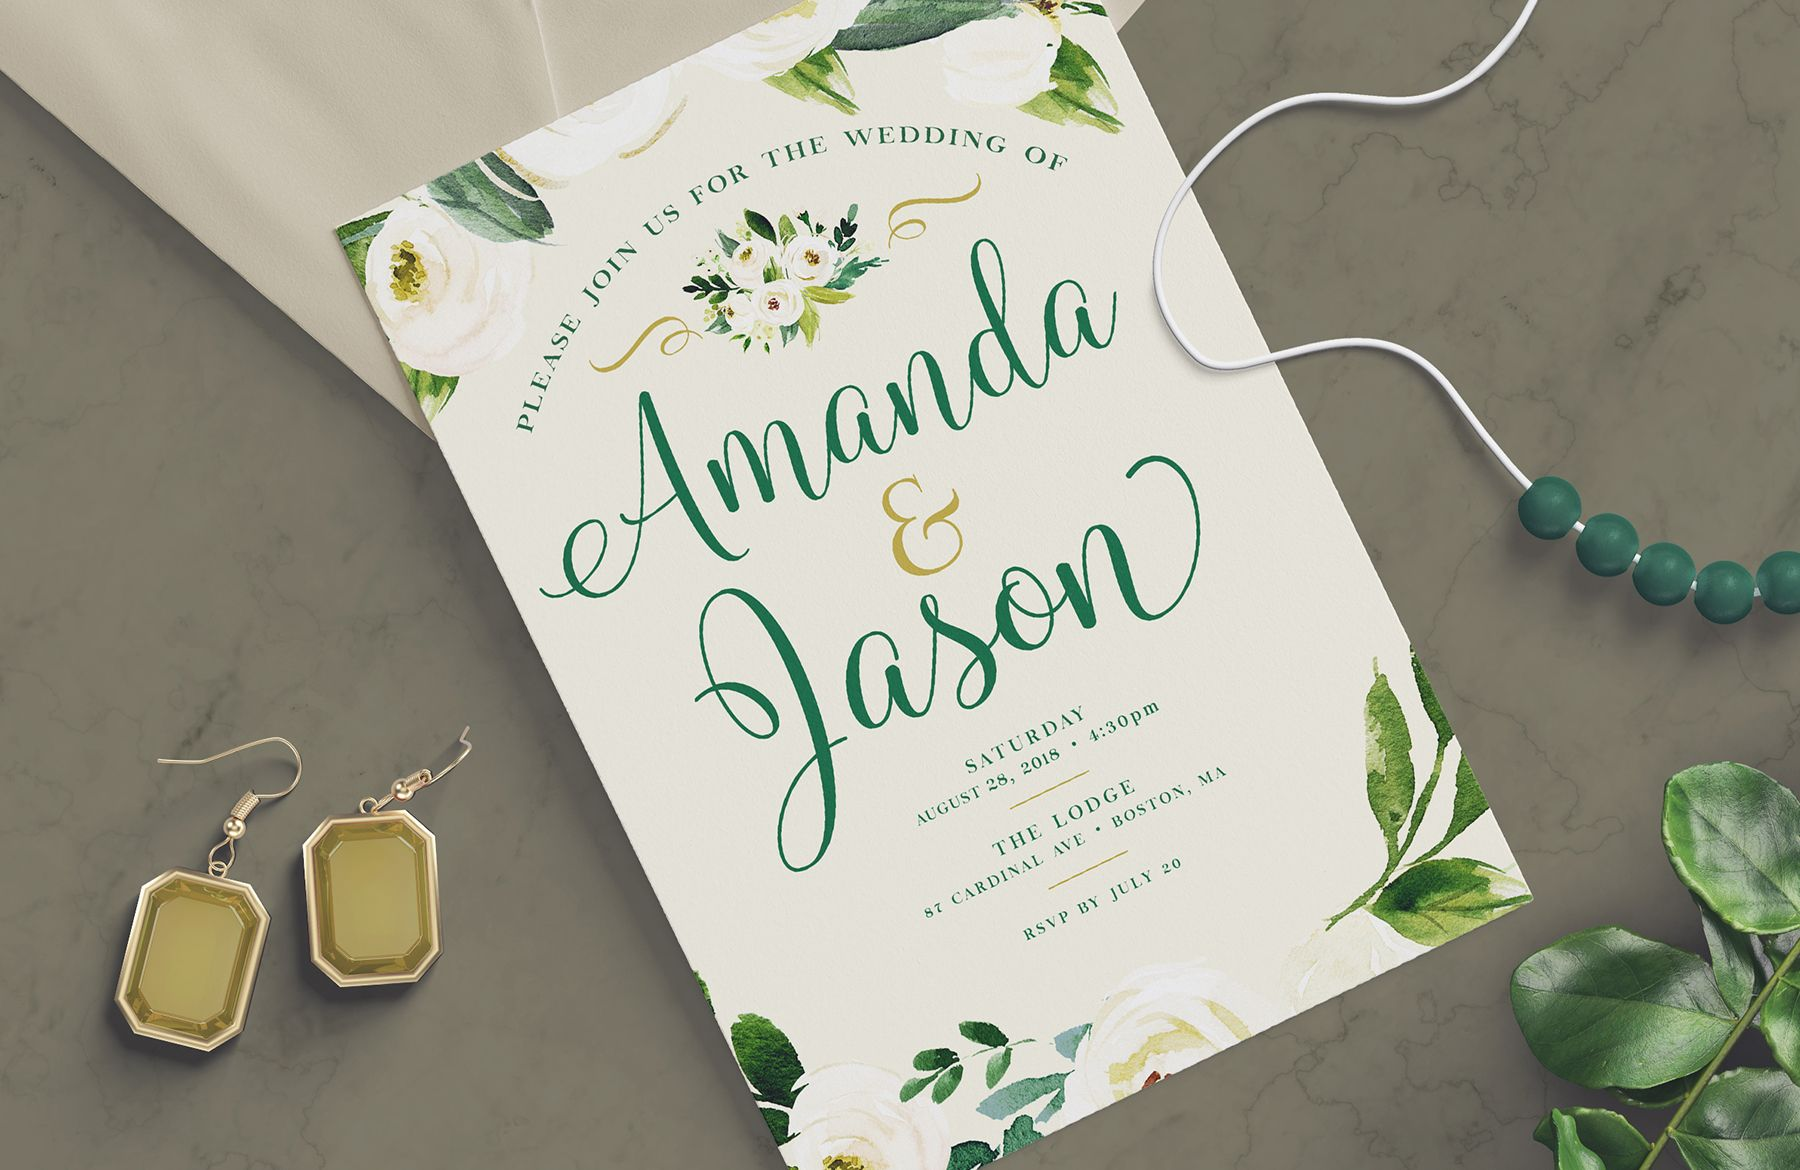 How To Create A Wedding Invitation Design In Photoshop